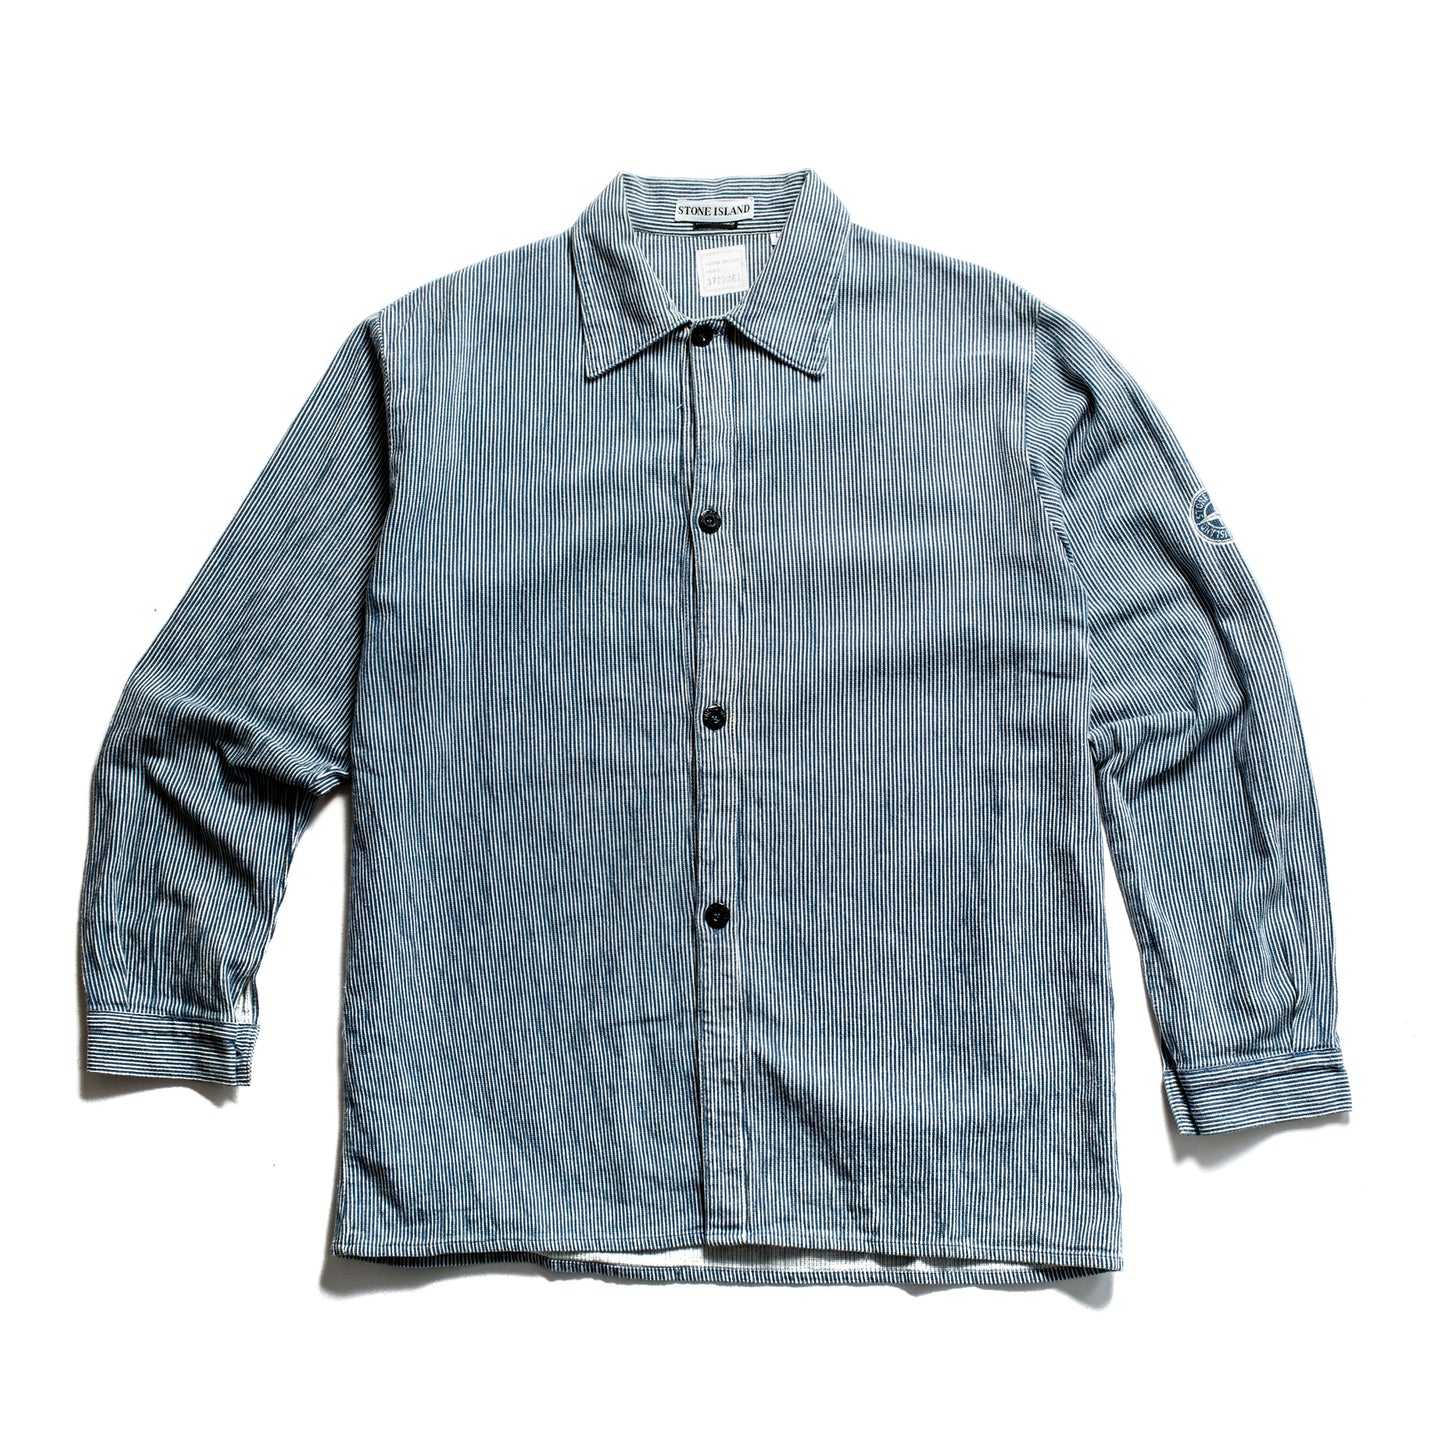 S/S 1997 Blue&White Compass Imprint Overshirt